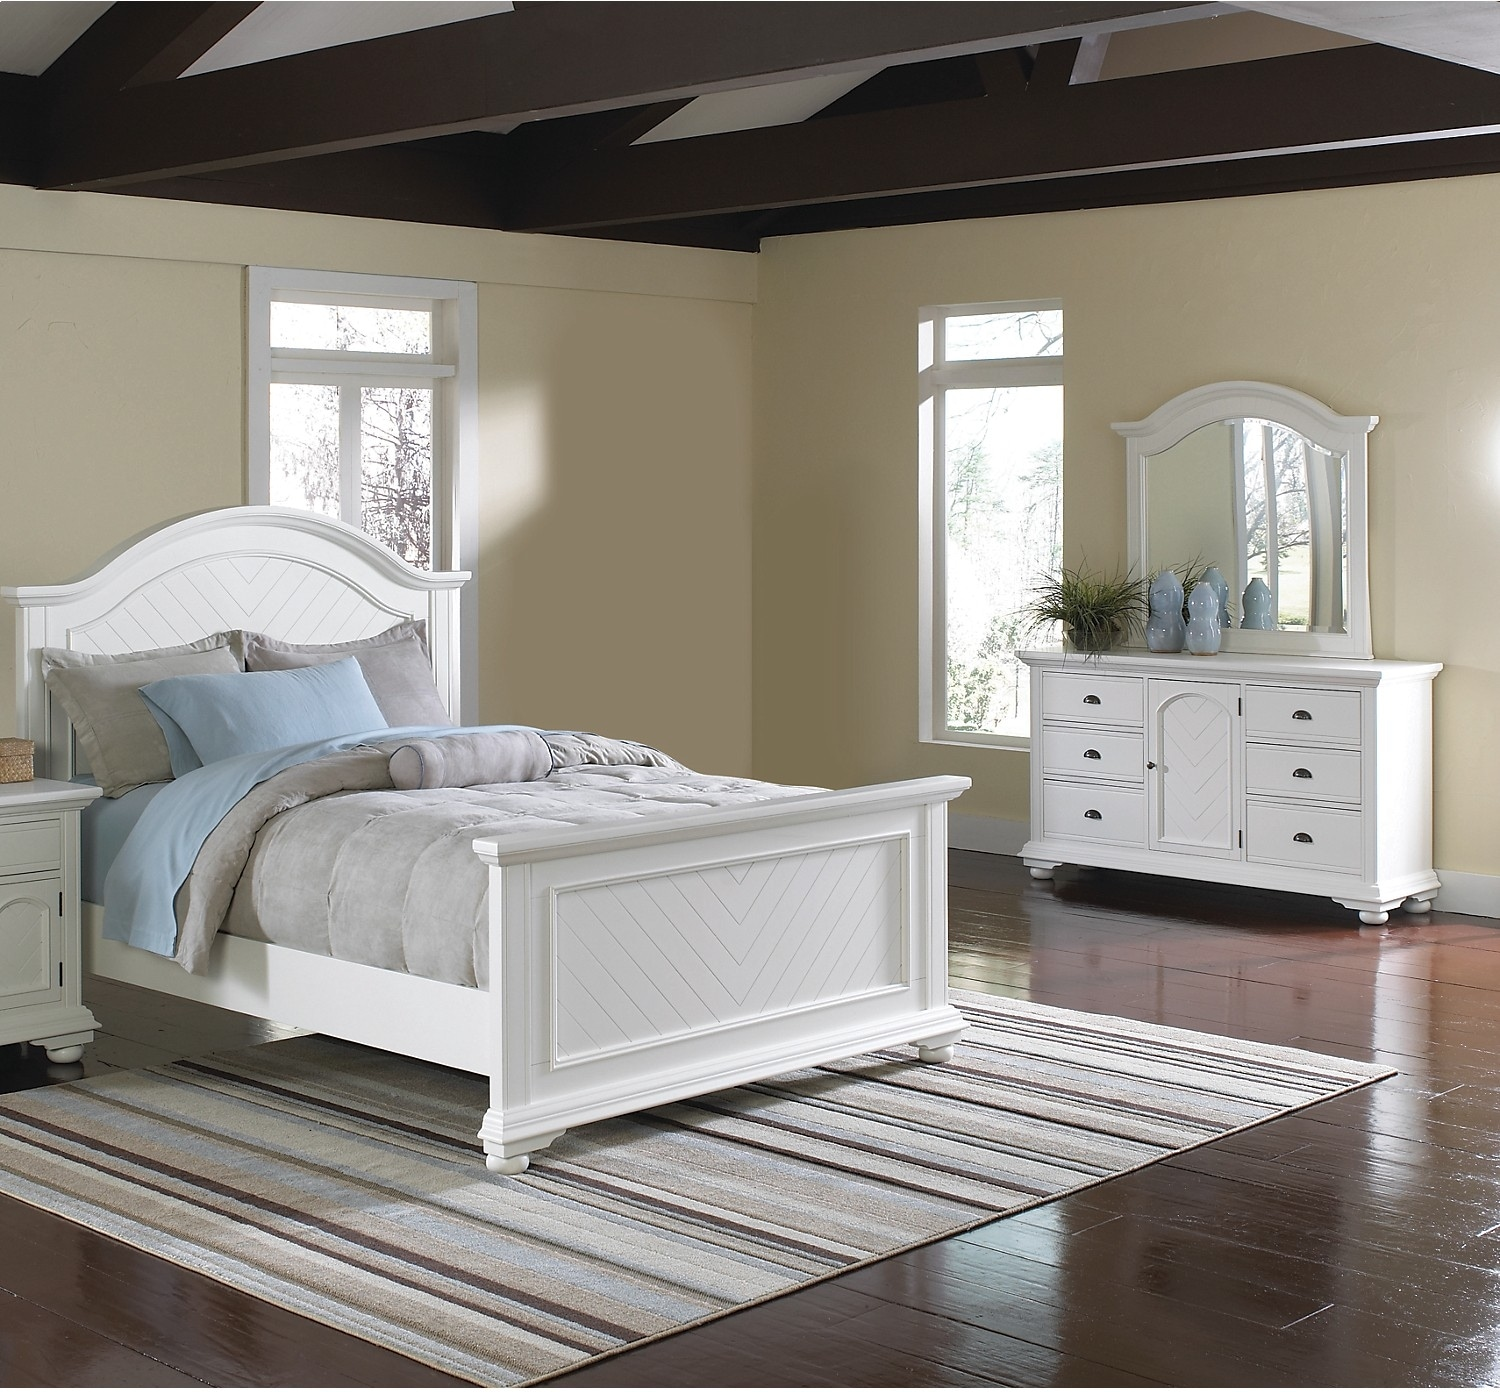 Brook f White 5 Piece King Bedroom Set